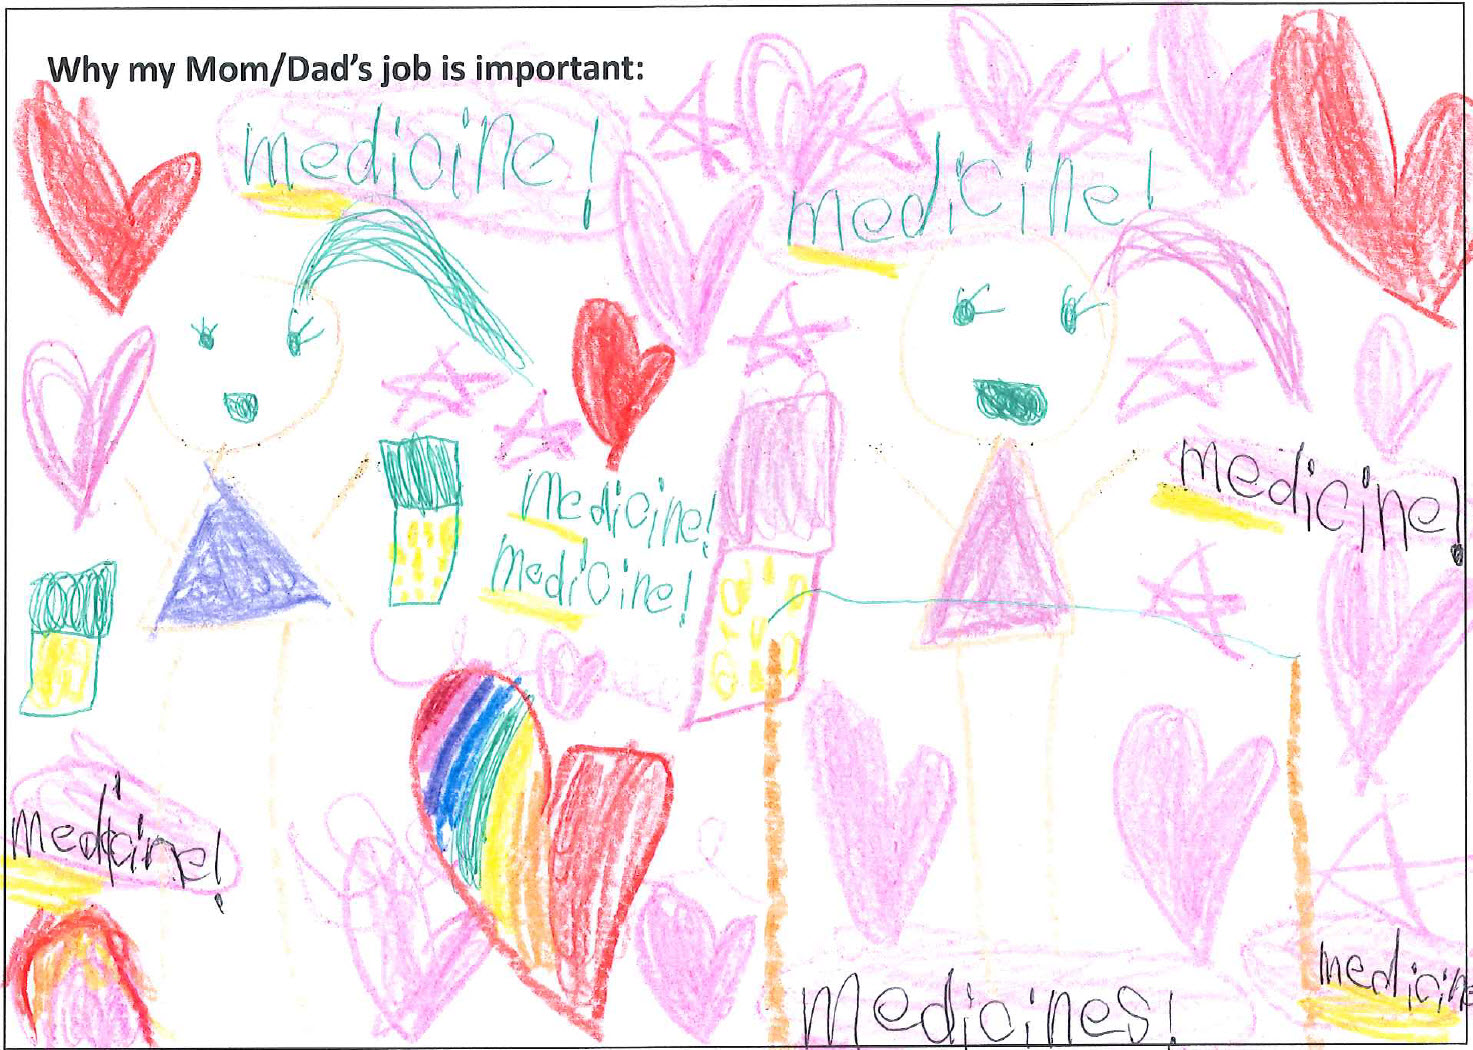 drawing by a child of two girls excited about specialty medicines surrounded by pink hearts